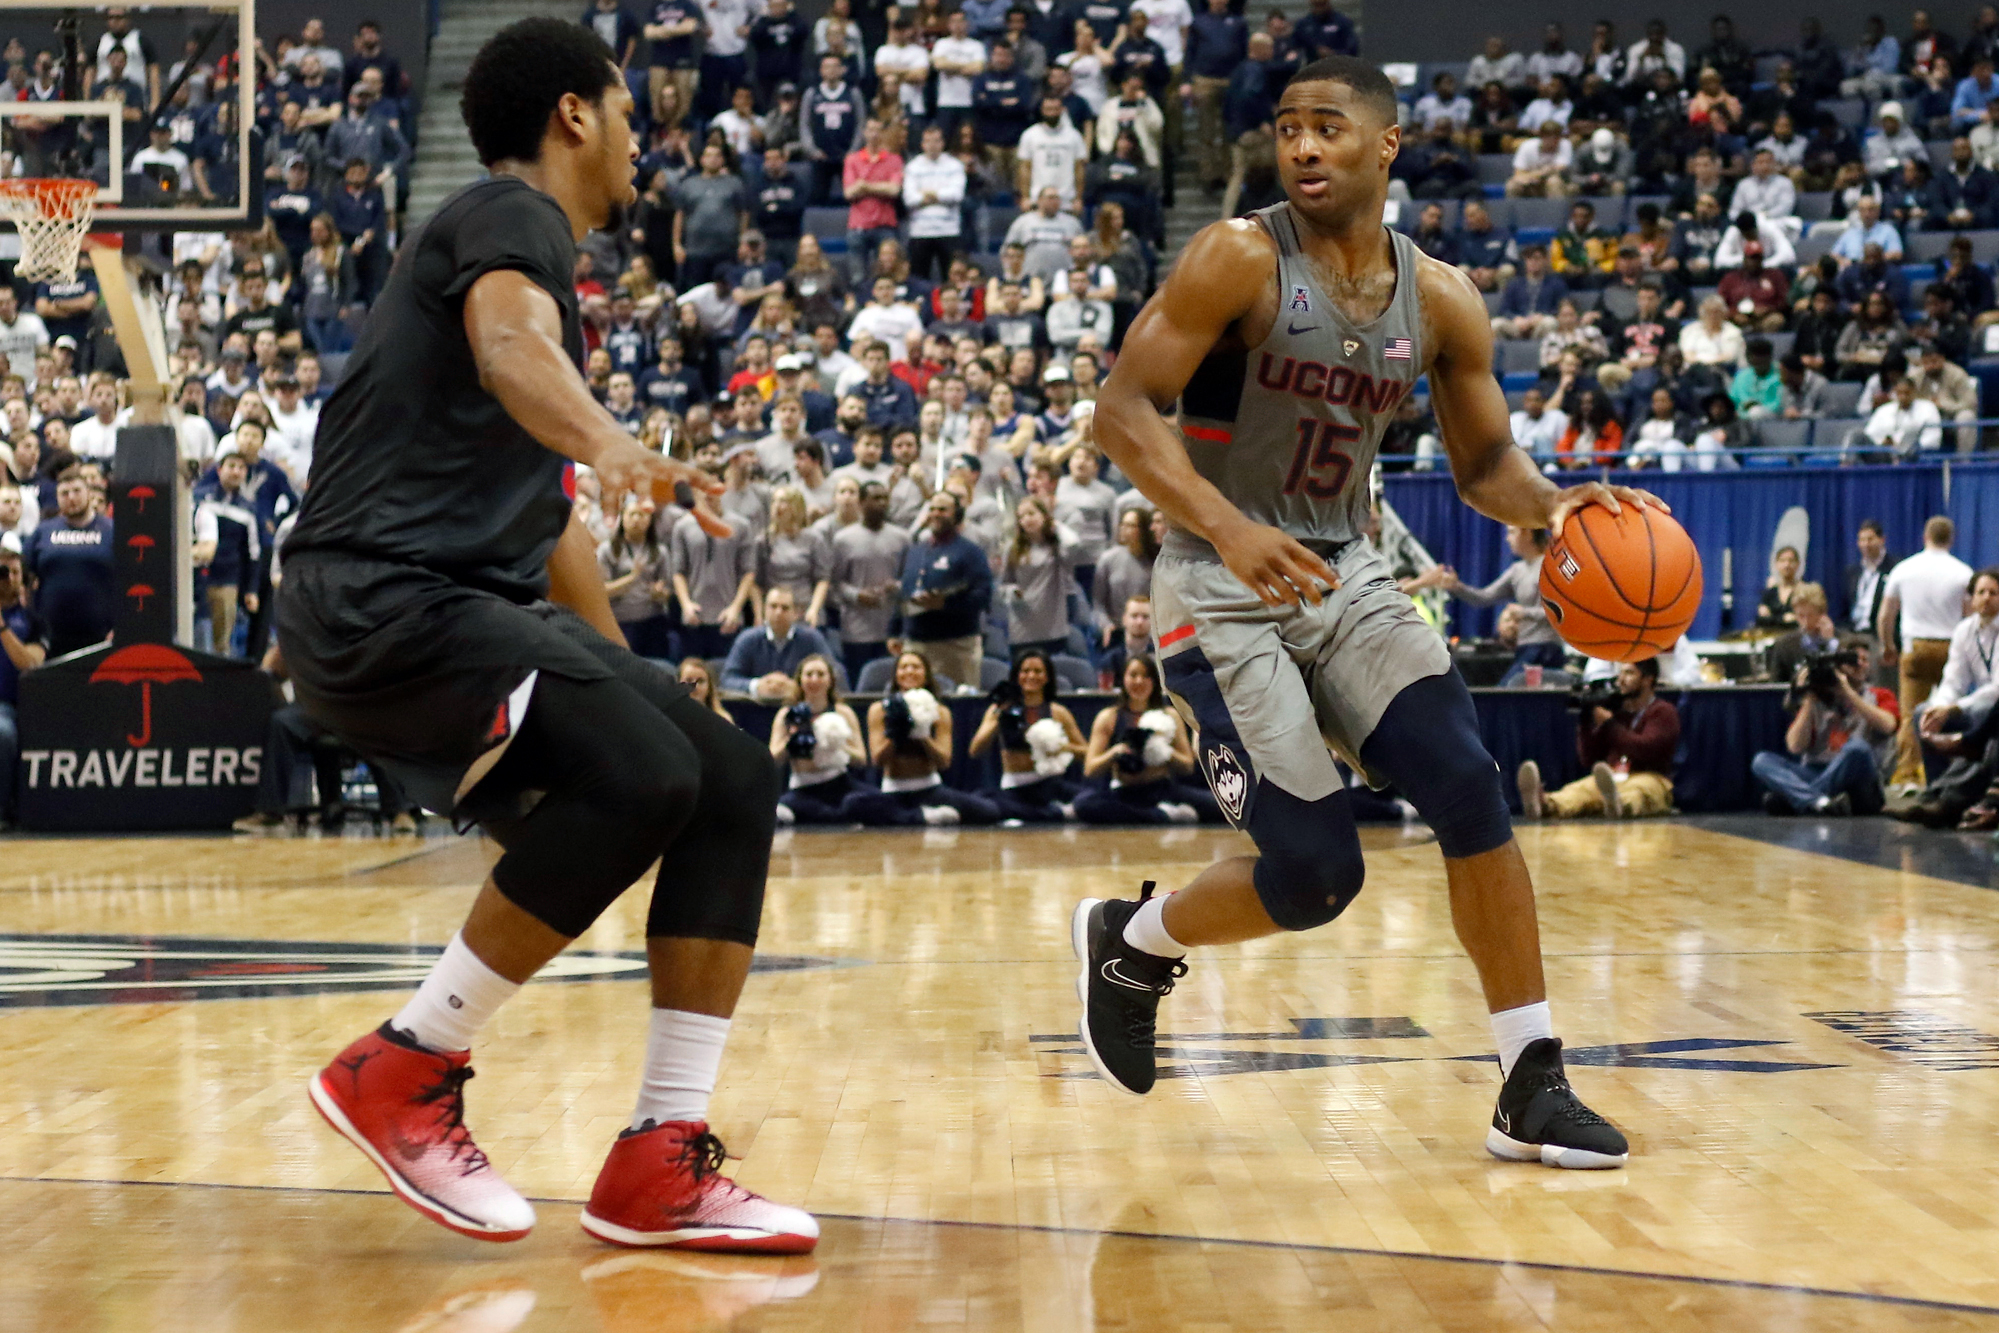 Photos Mbb Smu Mustangs Uconn Huskies 2 25 17 The